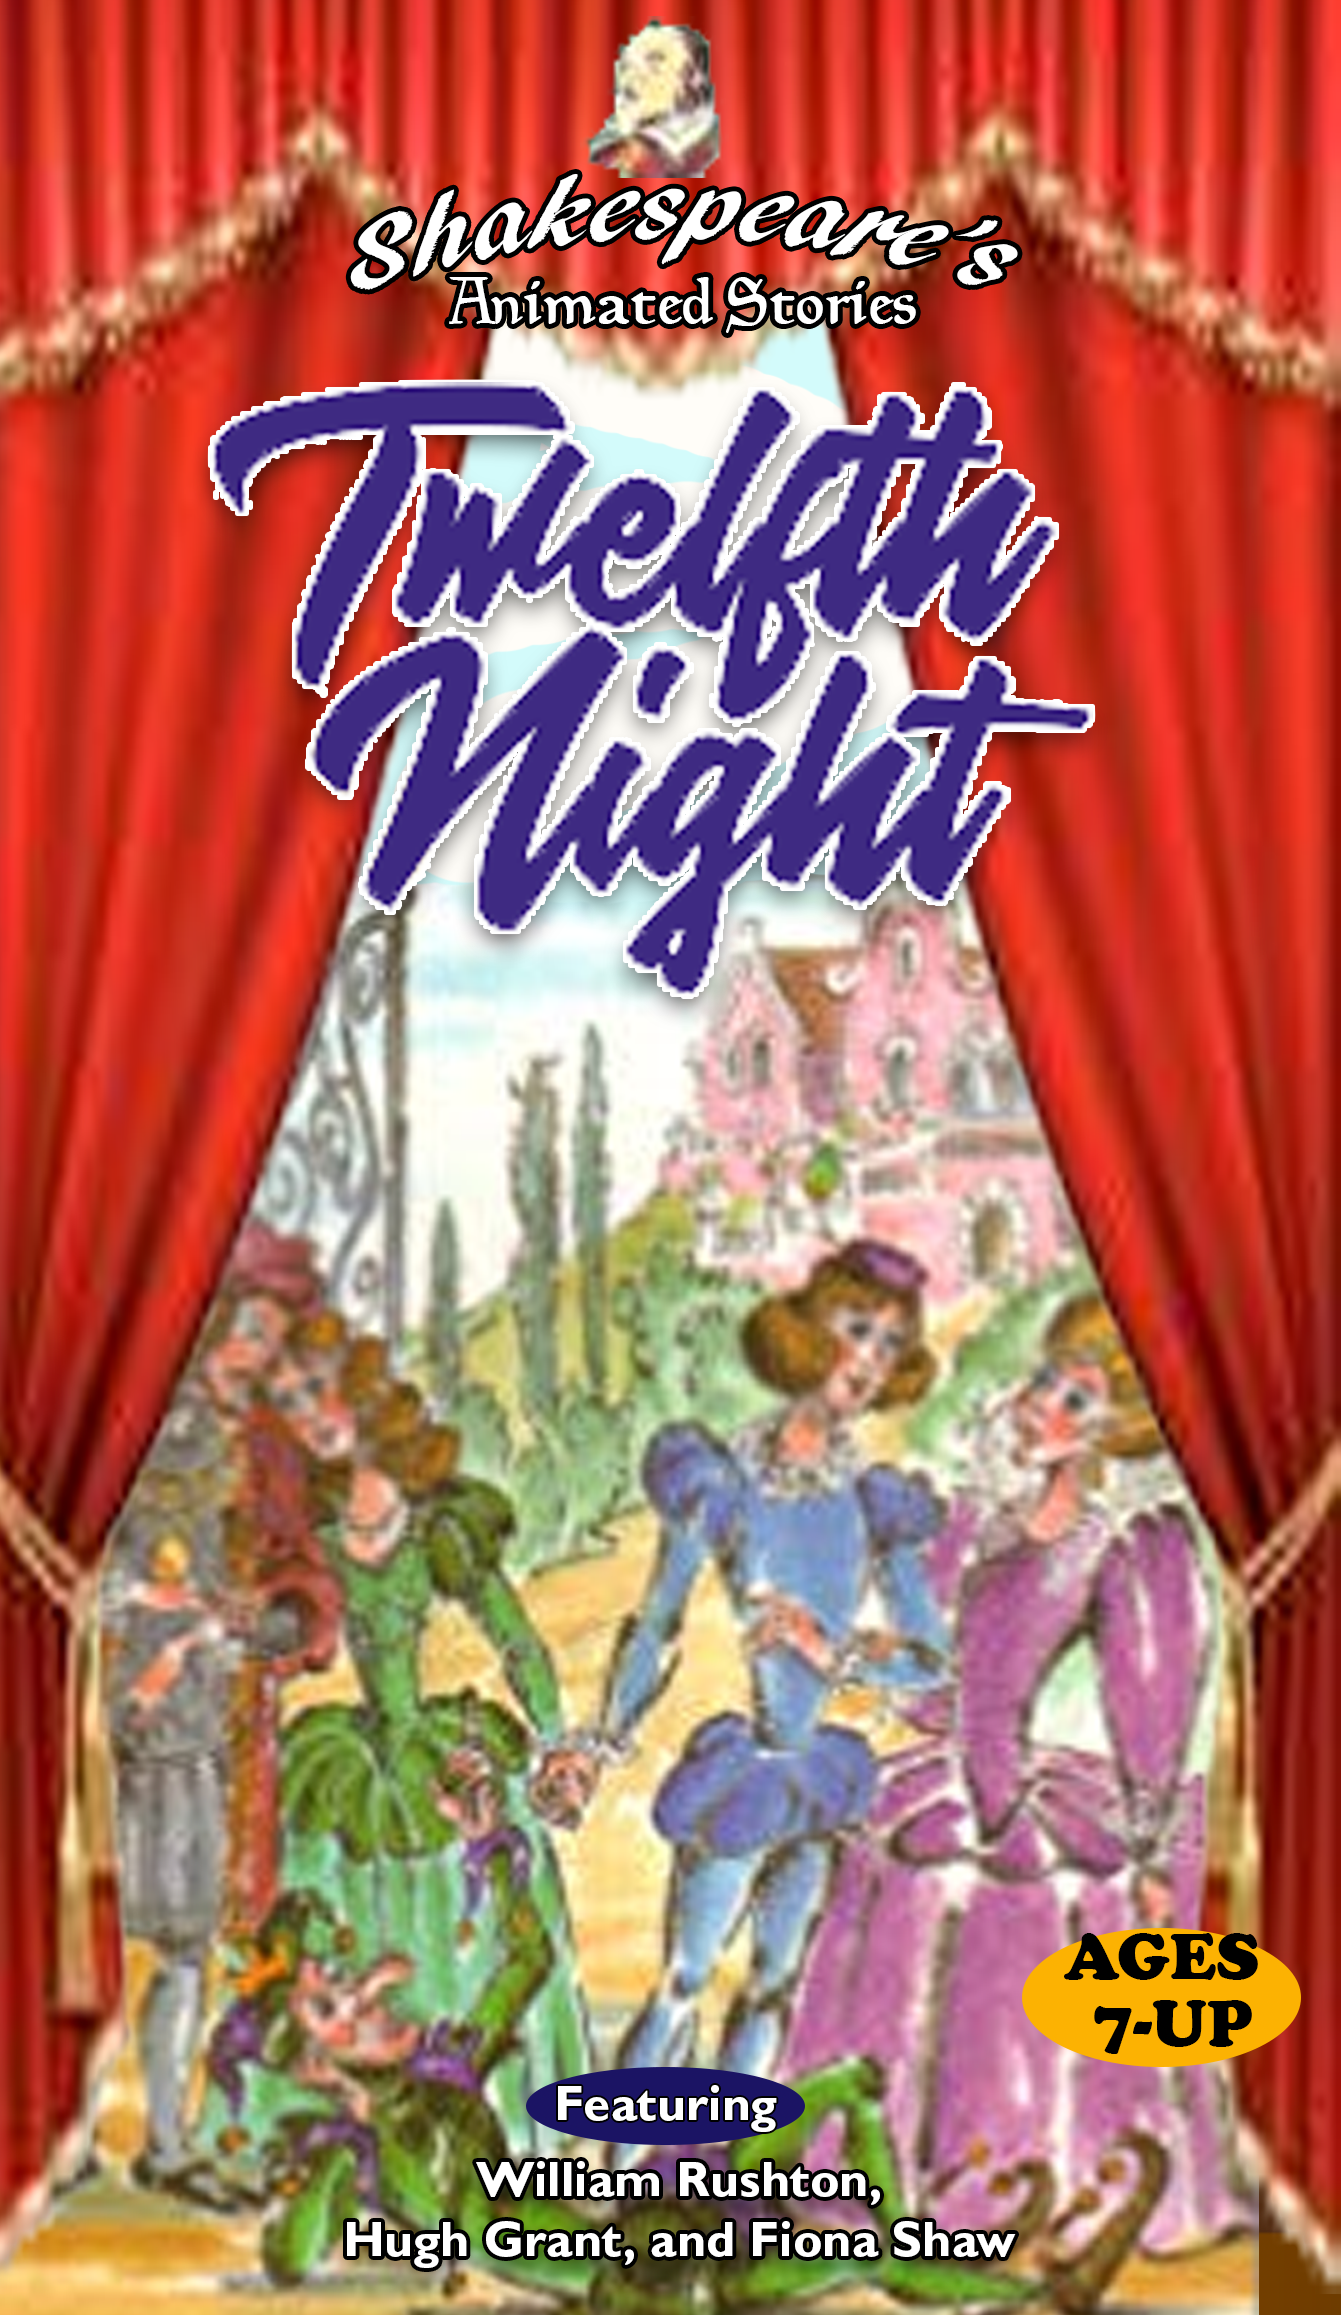 Shakespeare's Animated Stories: Twelfth Night (1997 VHS)